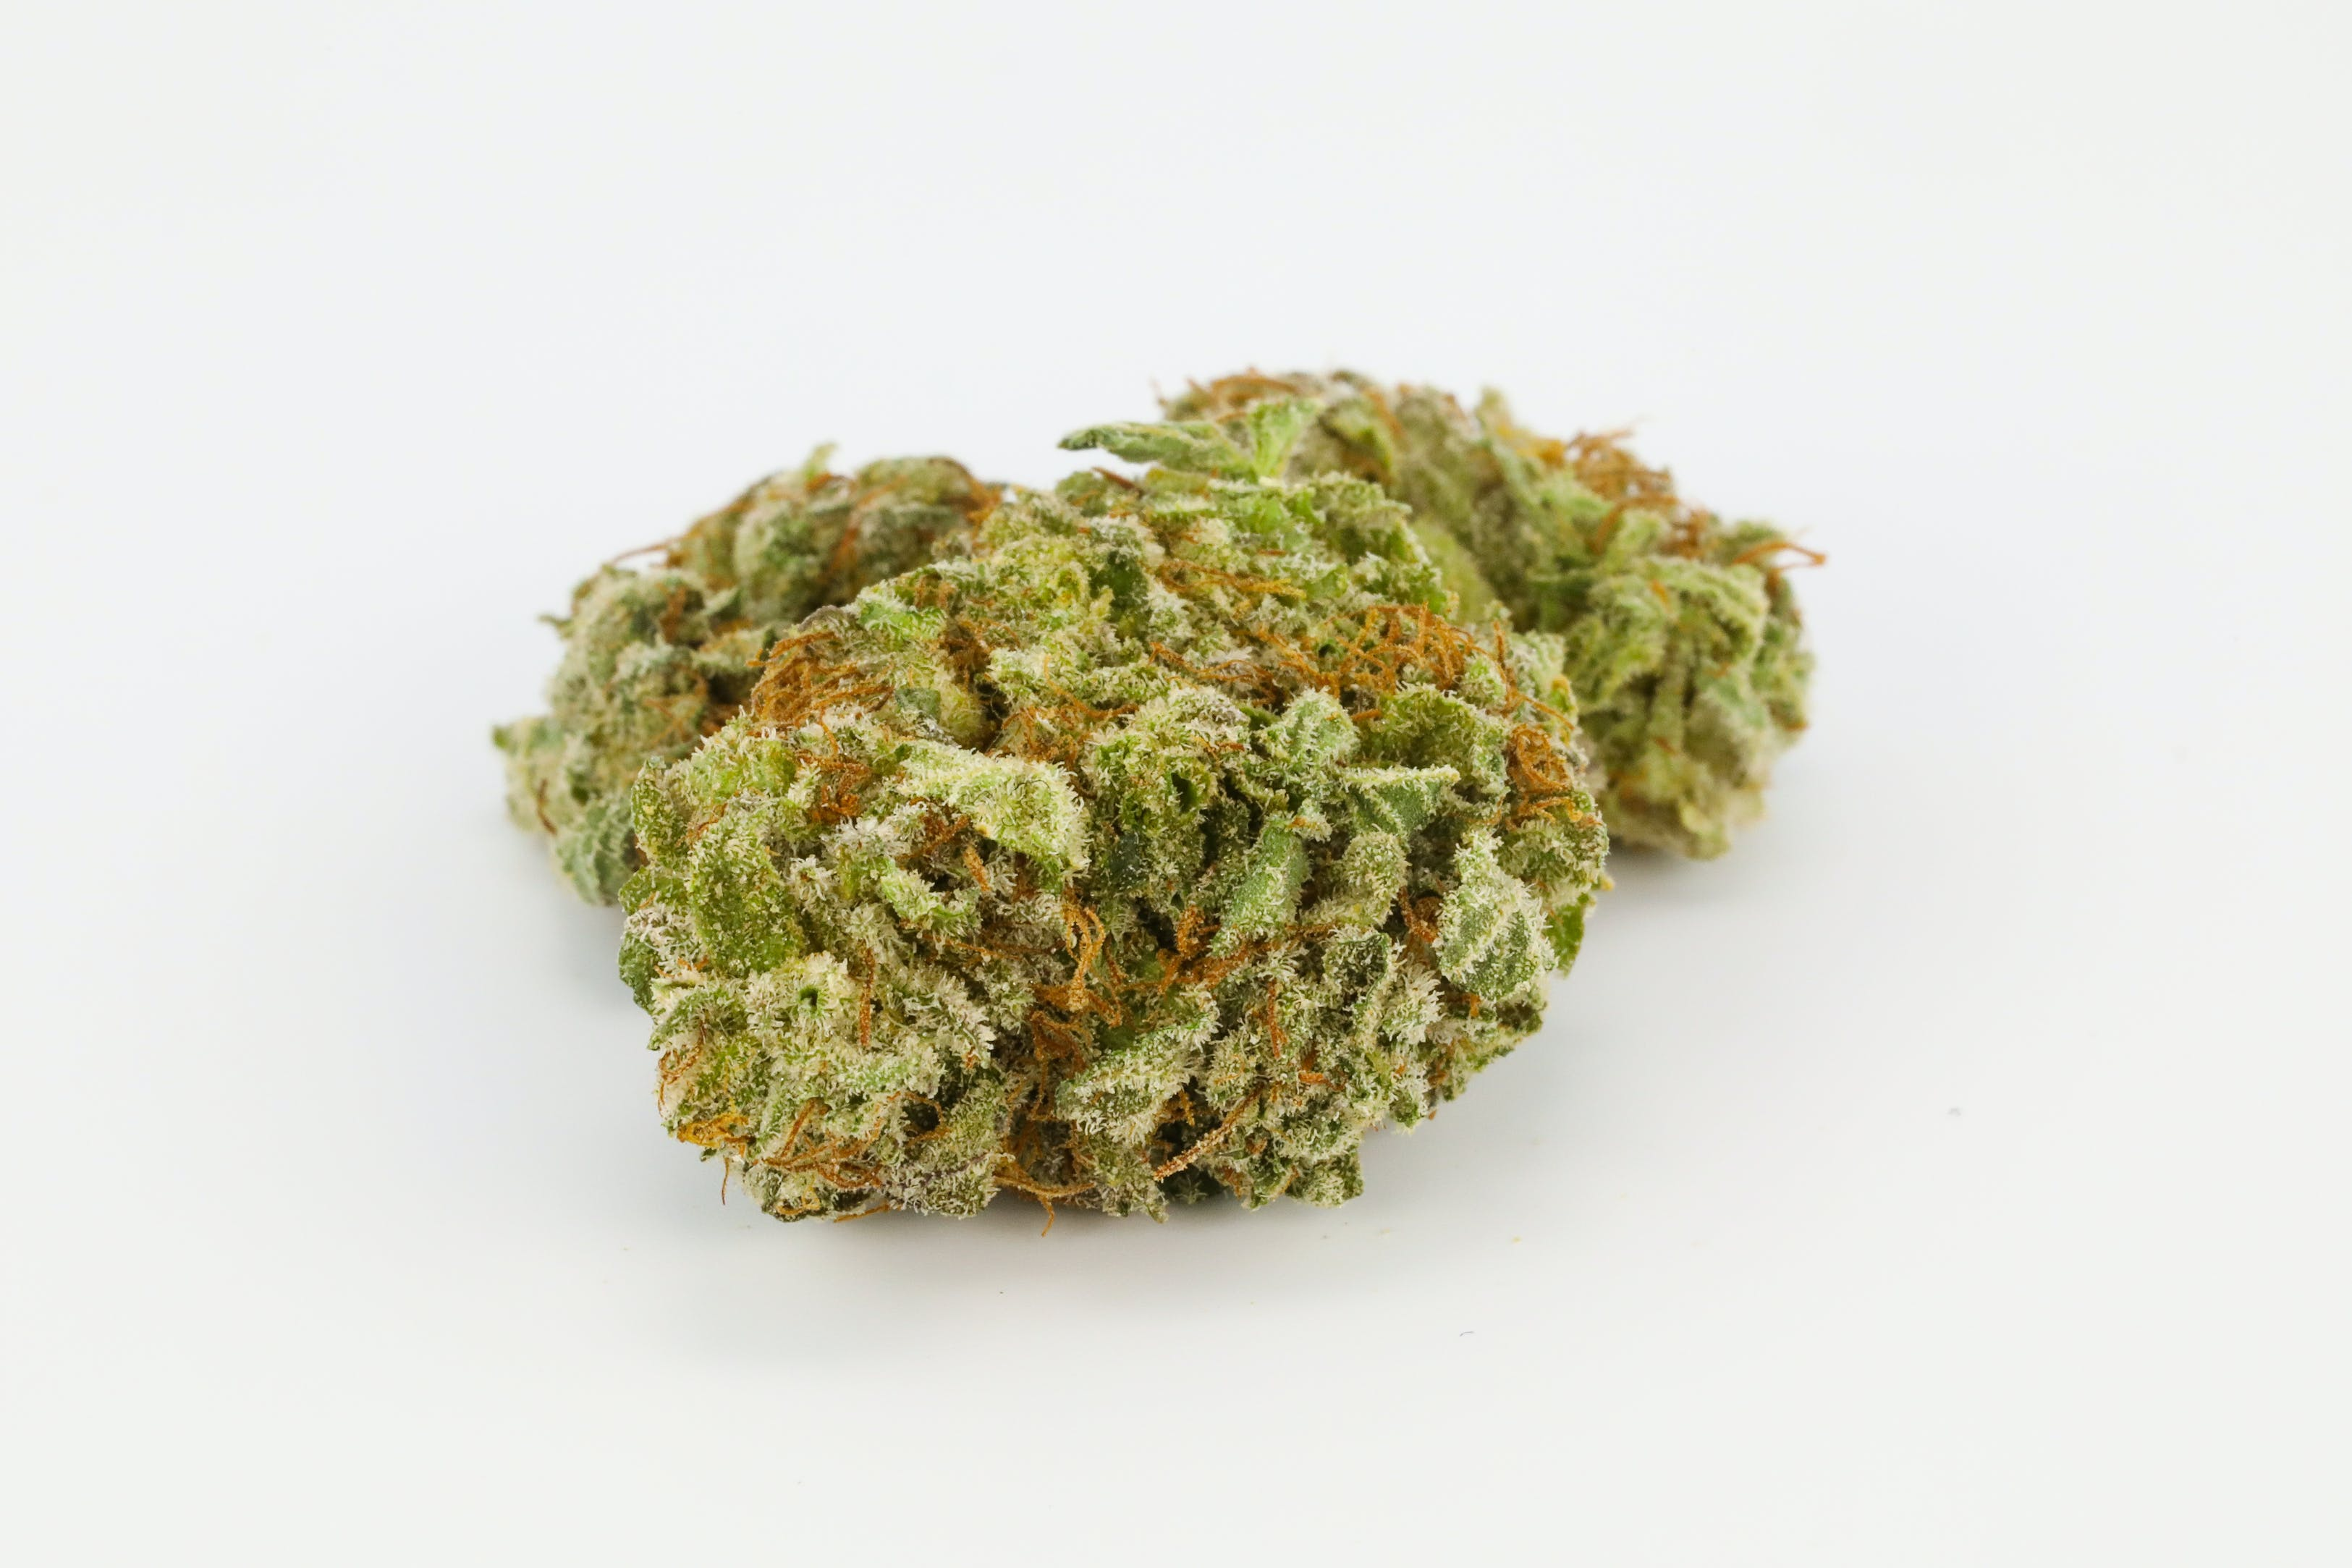 Black Diamond Weed; Black Diamond Cannabis Strain; Black Diamond Indica Marijuana Strain